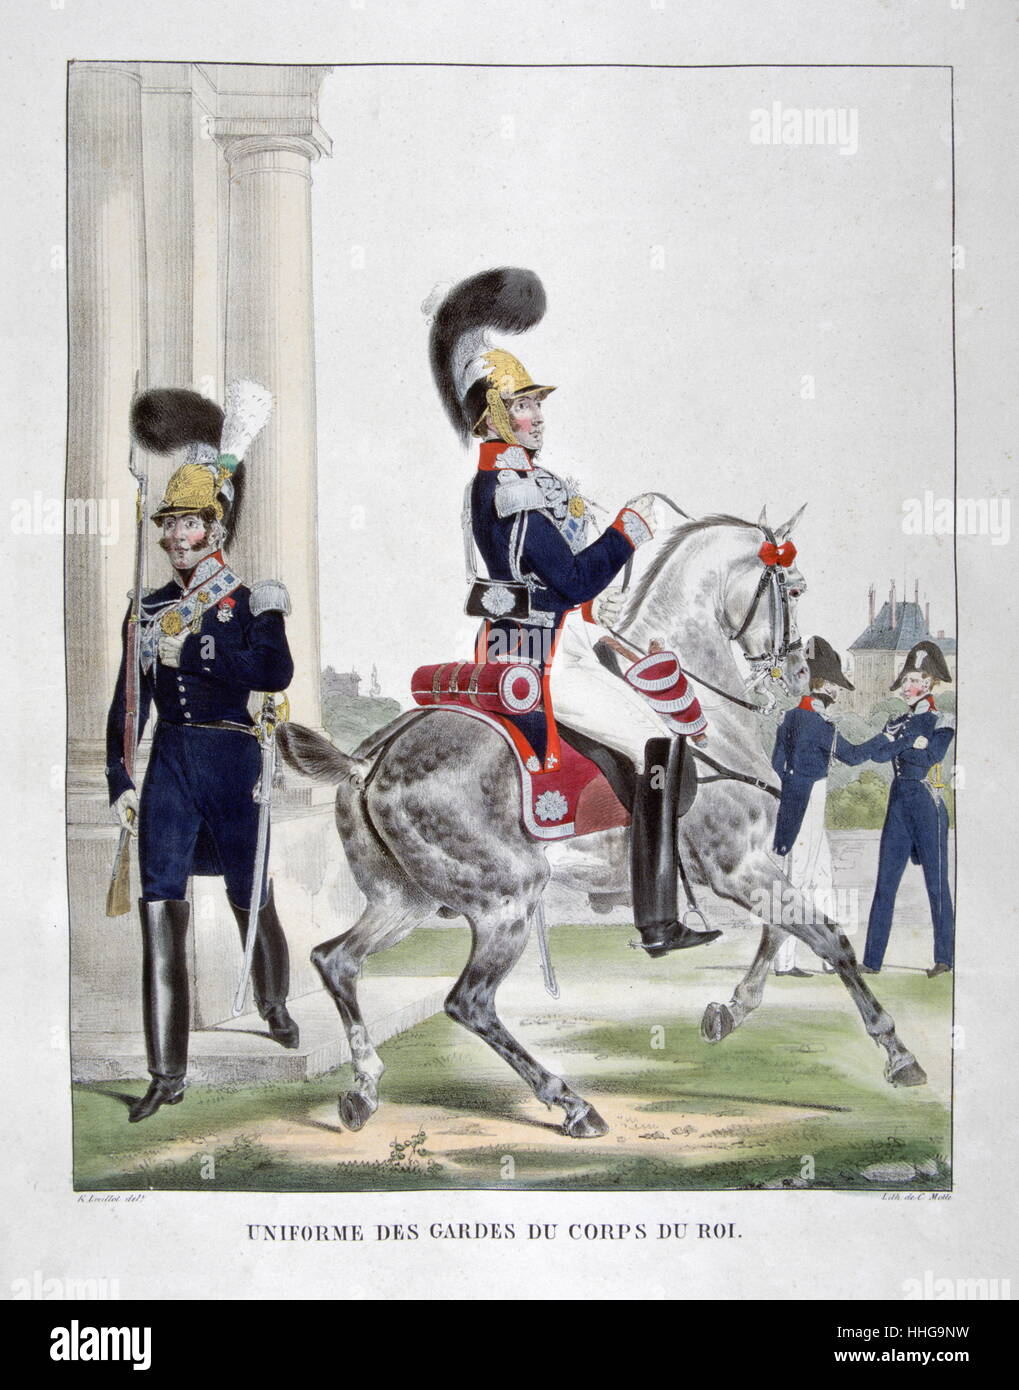 Uniformed cavalryman of the French Lancers, Royal Guard Regiment, 1823 - Stock Image